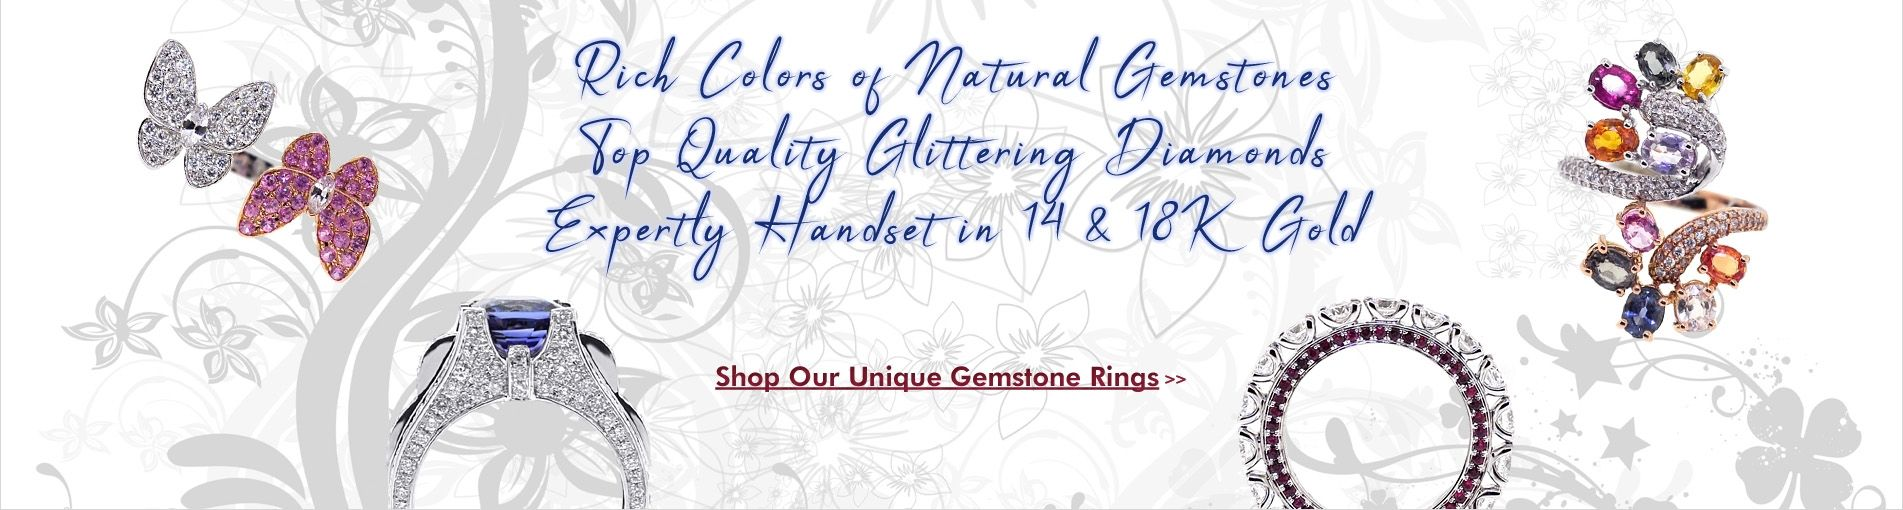 Shop Our Unique Gemstone Rings!